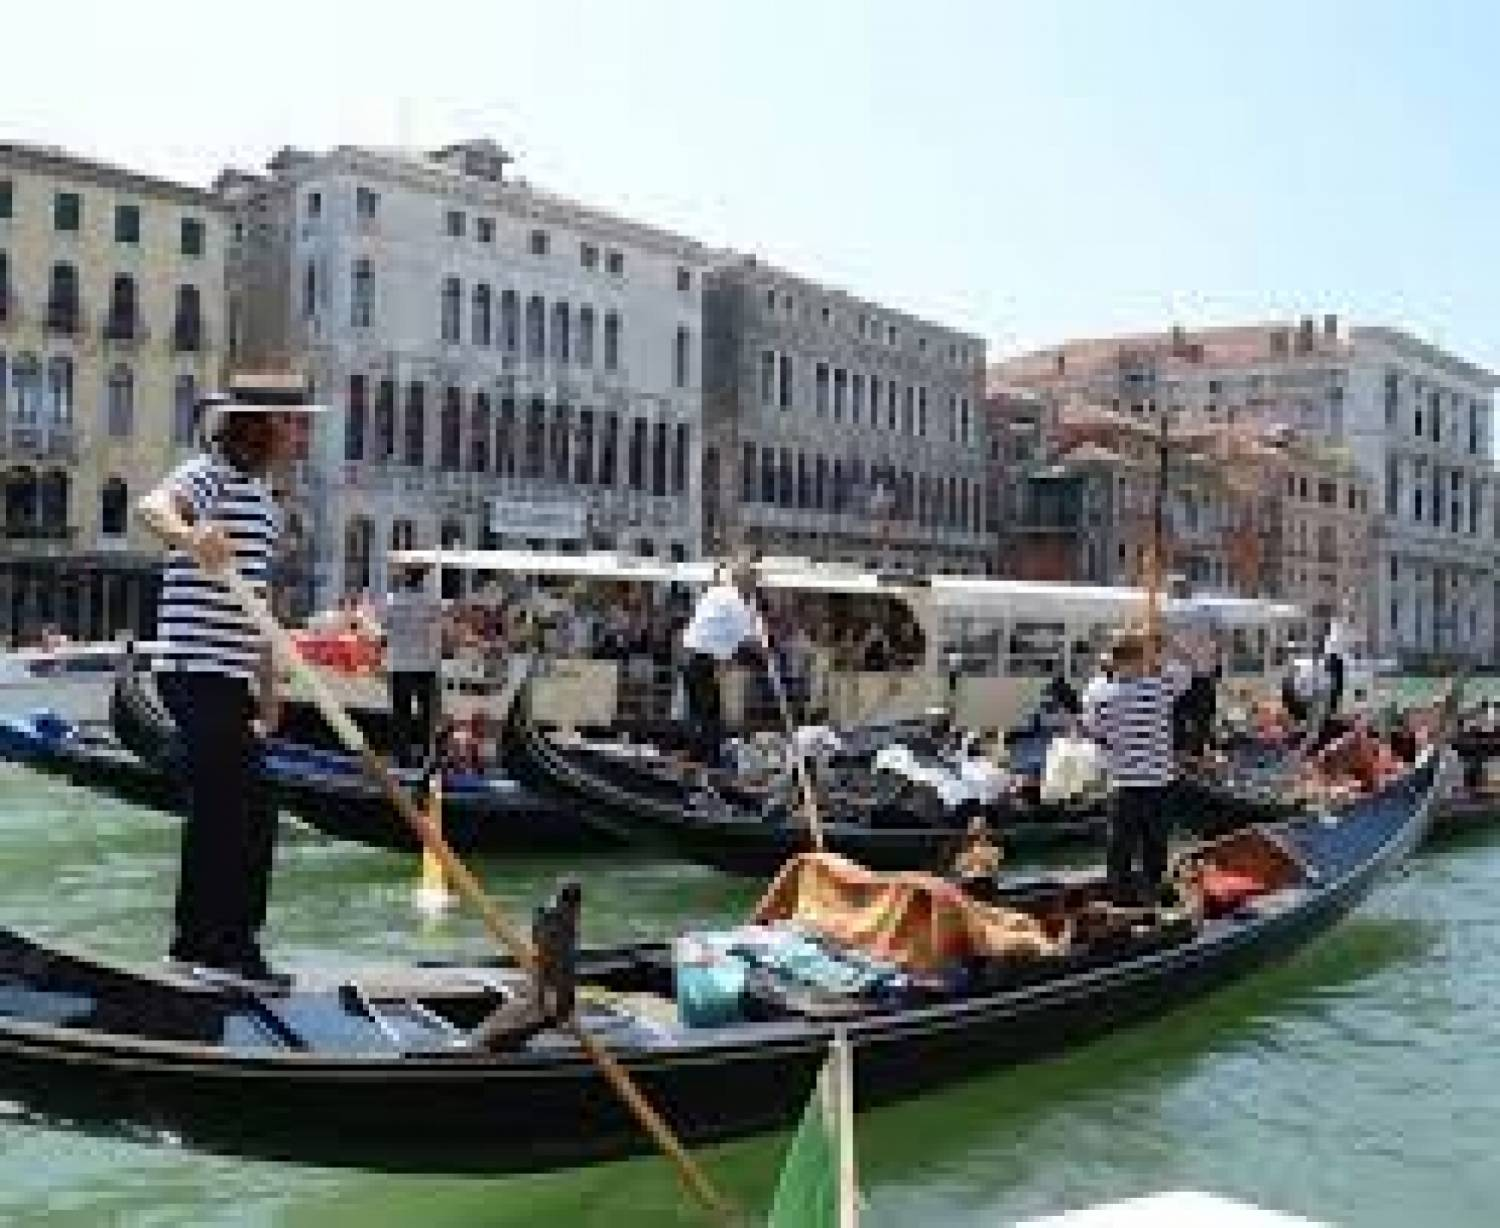 Classic Venice Gondola Ride Tuscany On A Budget One Of